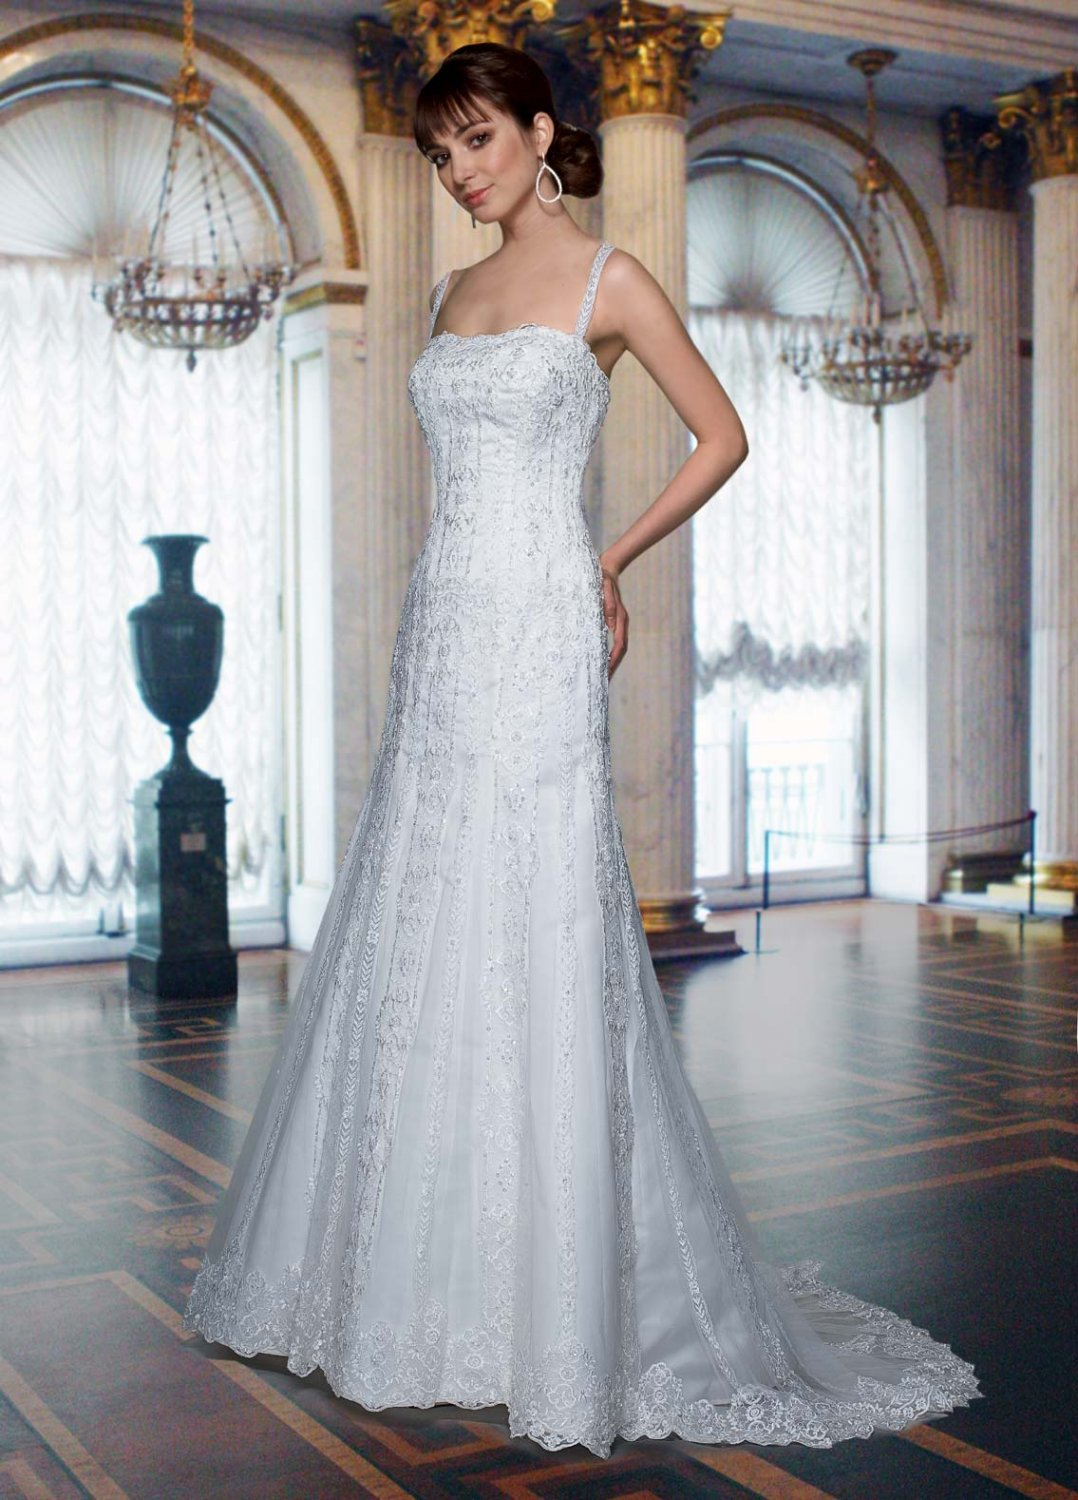 Free shipping the most popular lace wedding dress EC335